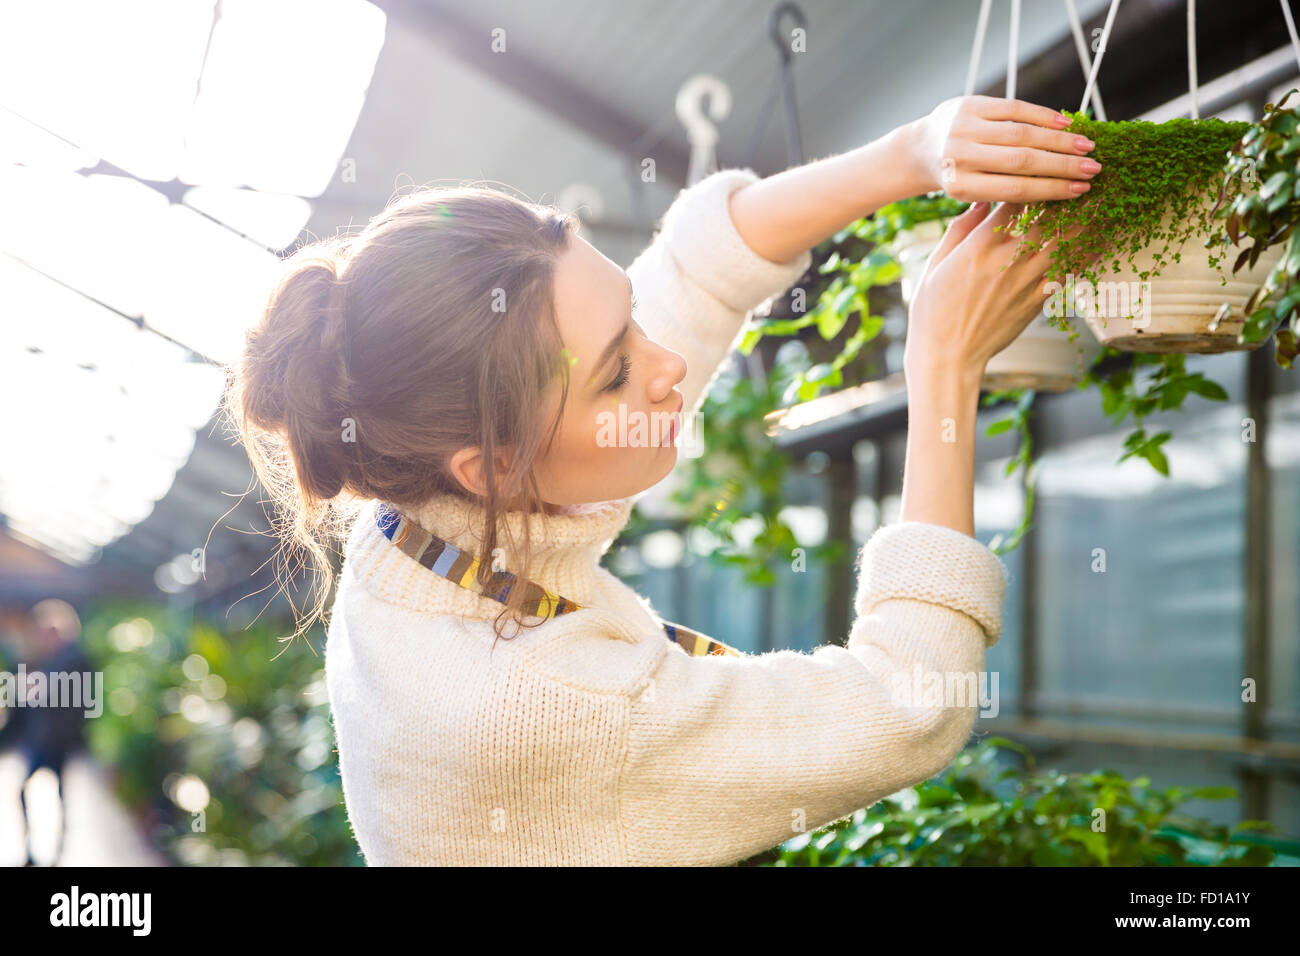 Tender pretty female gardener working with plants and flowers in garden center - Stock Image